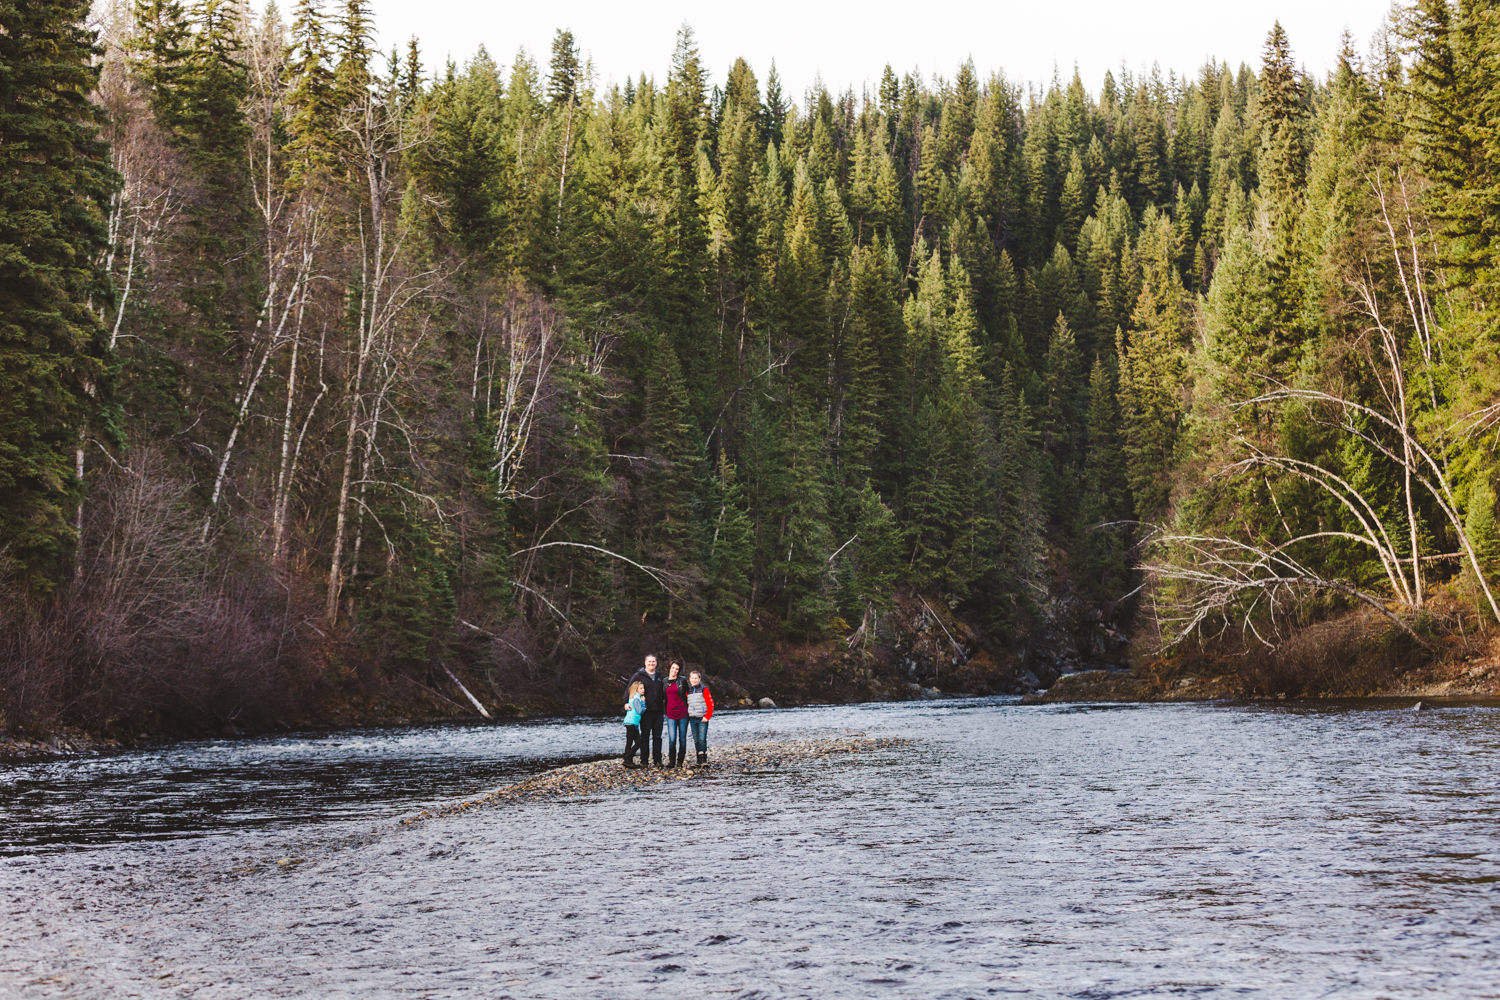 quesnel-family-photographers-quesnel-family-photography-cotton-wood-river-quesnel-bc-kelowna-photographer-julie-dorge (33 of 48).jpg